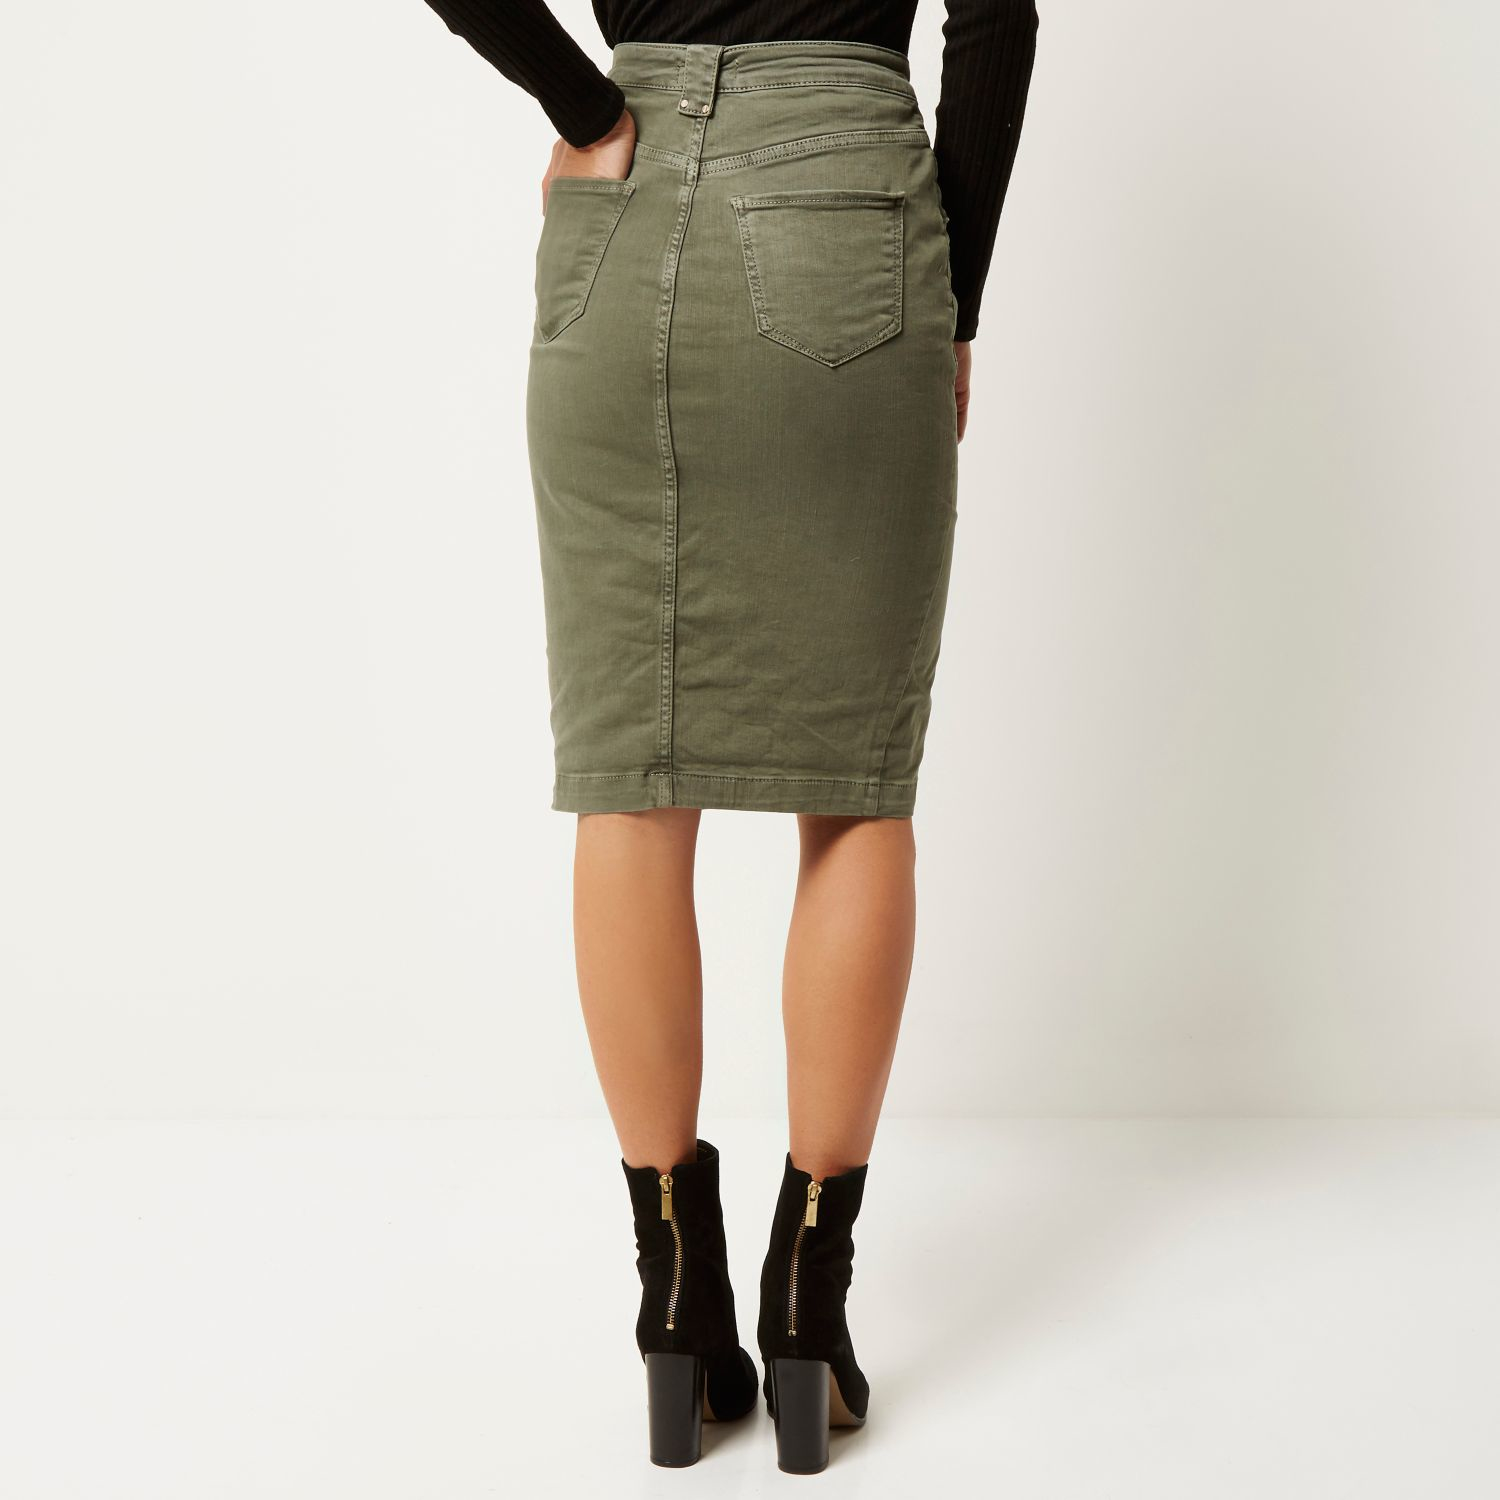 River island Khaki Denim Pencil Skirt in Natural | Lyst